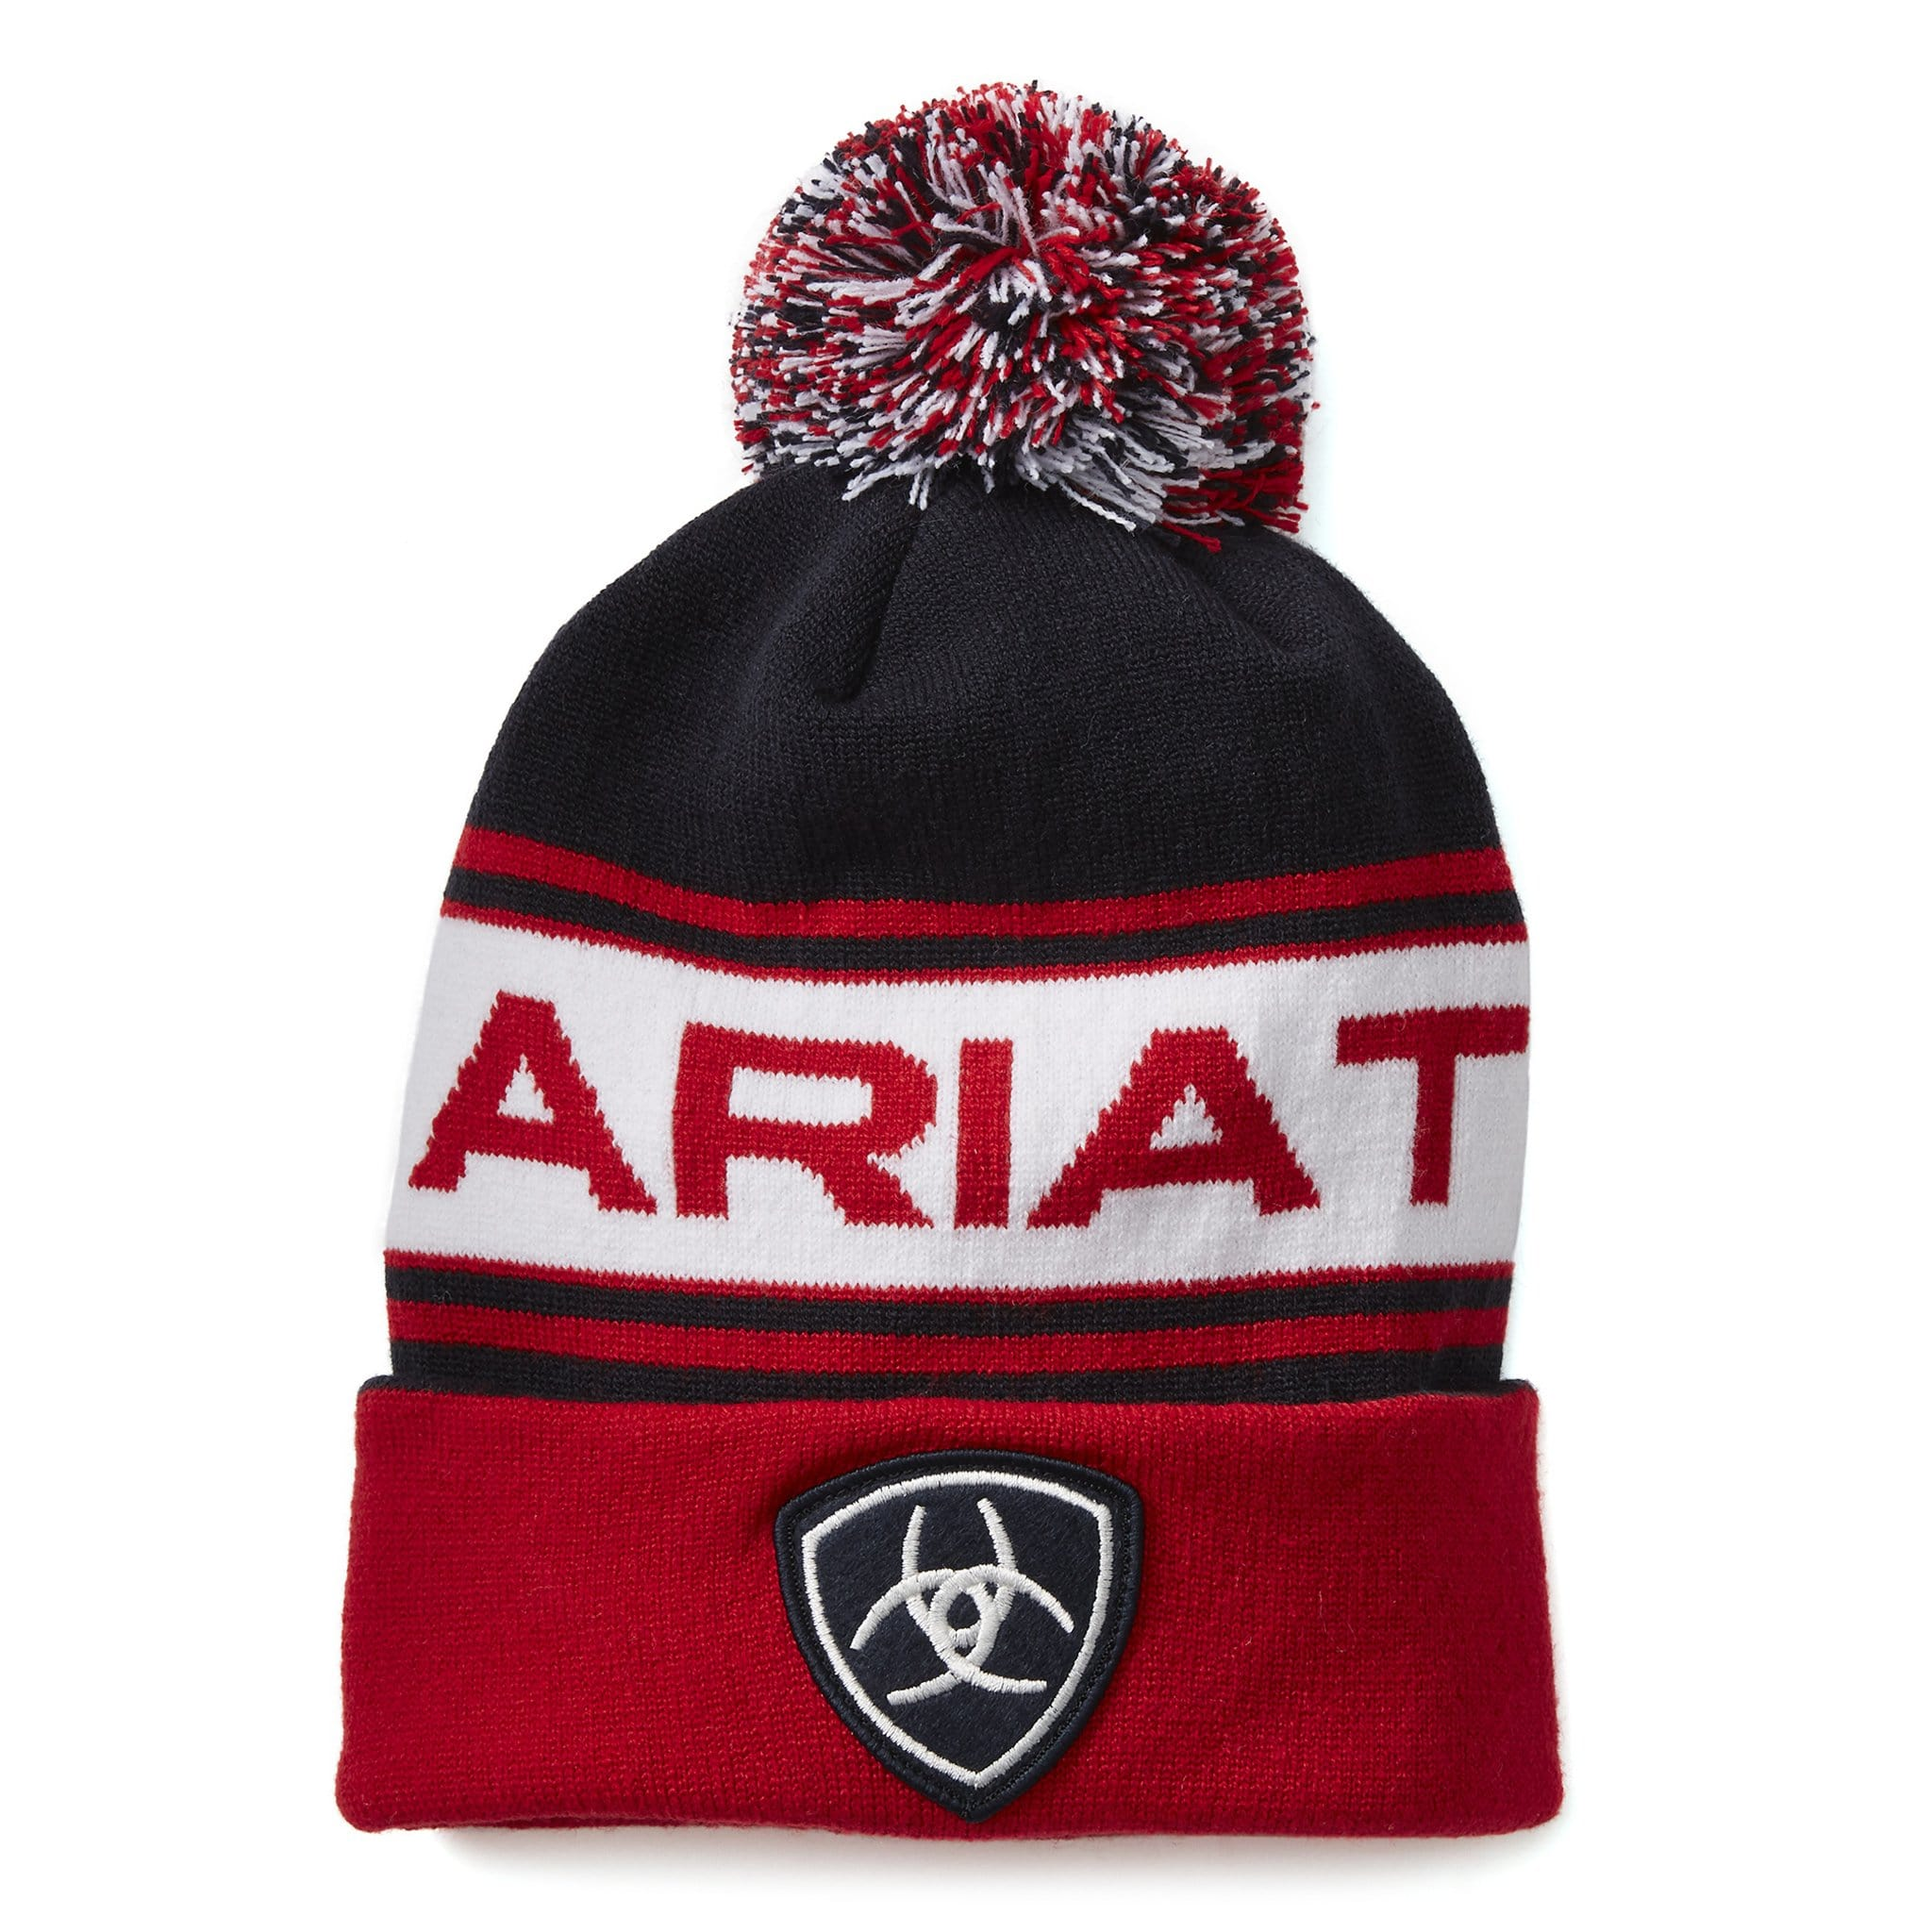 Ariat Team Beanie 10021125 Navy and Red